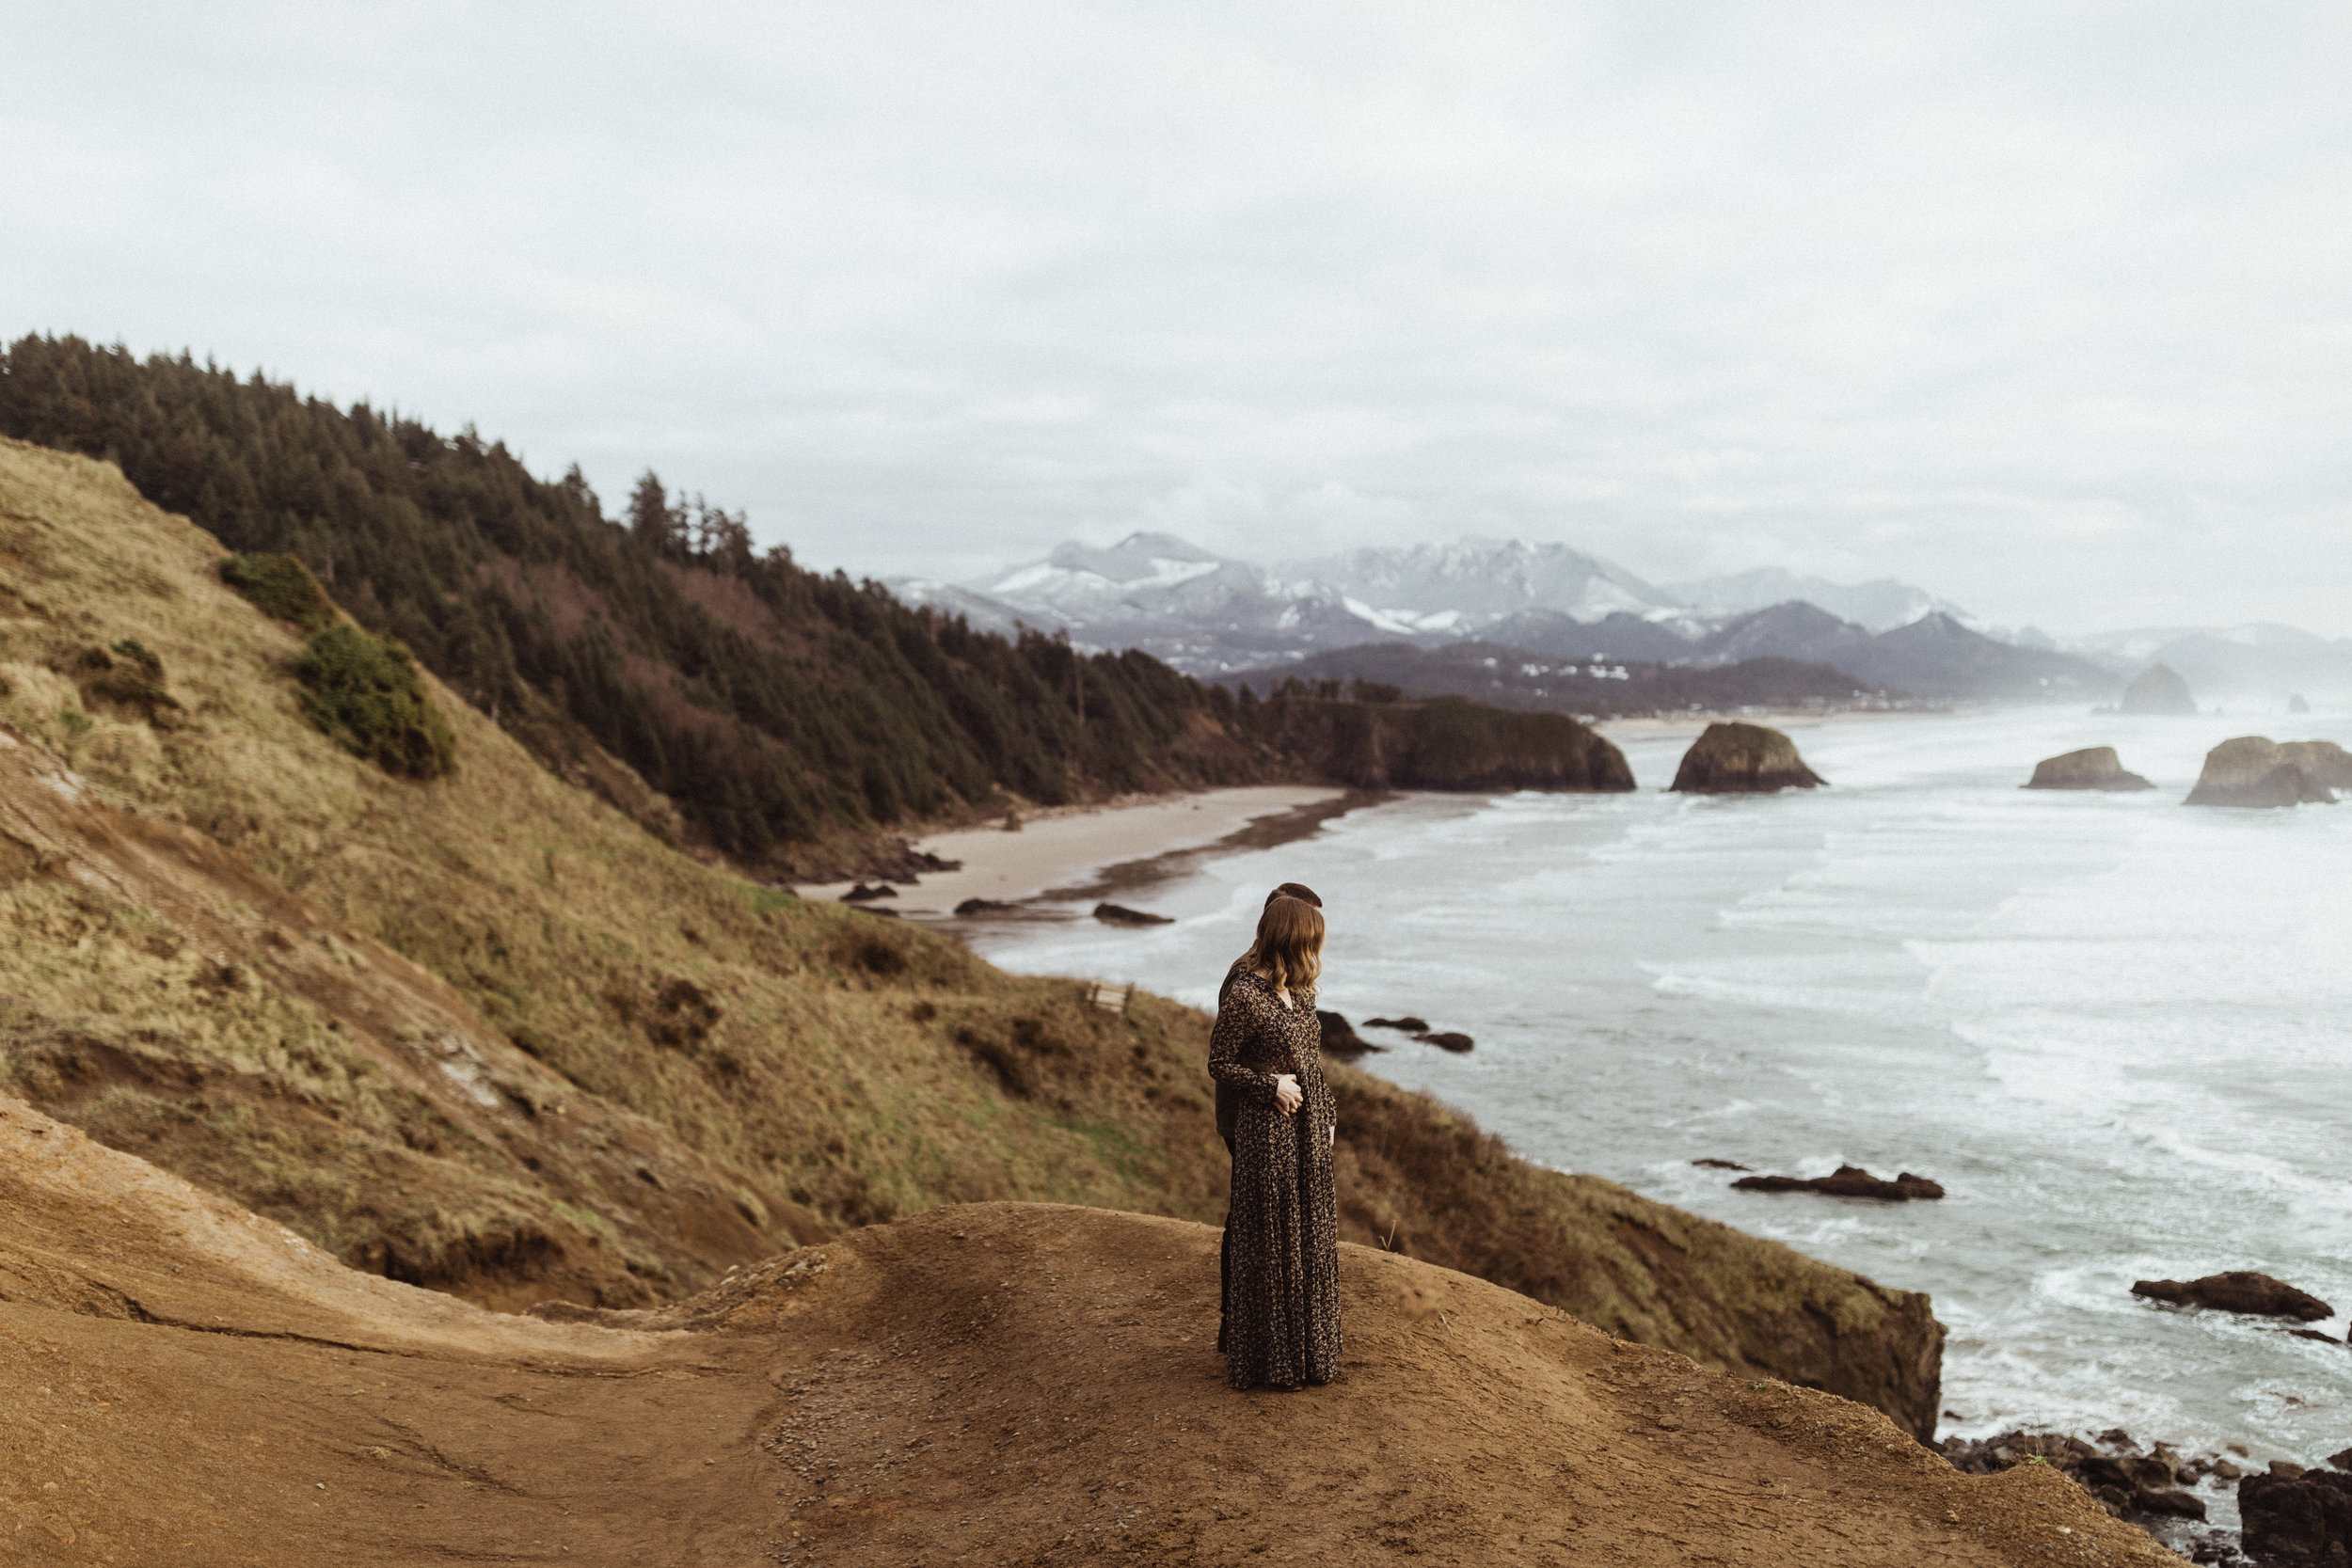 autumn-jimmy-engagement-session-oregon (7 of 139).jpg